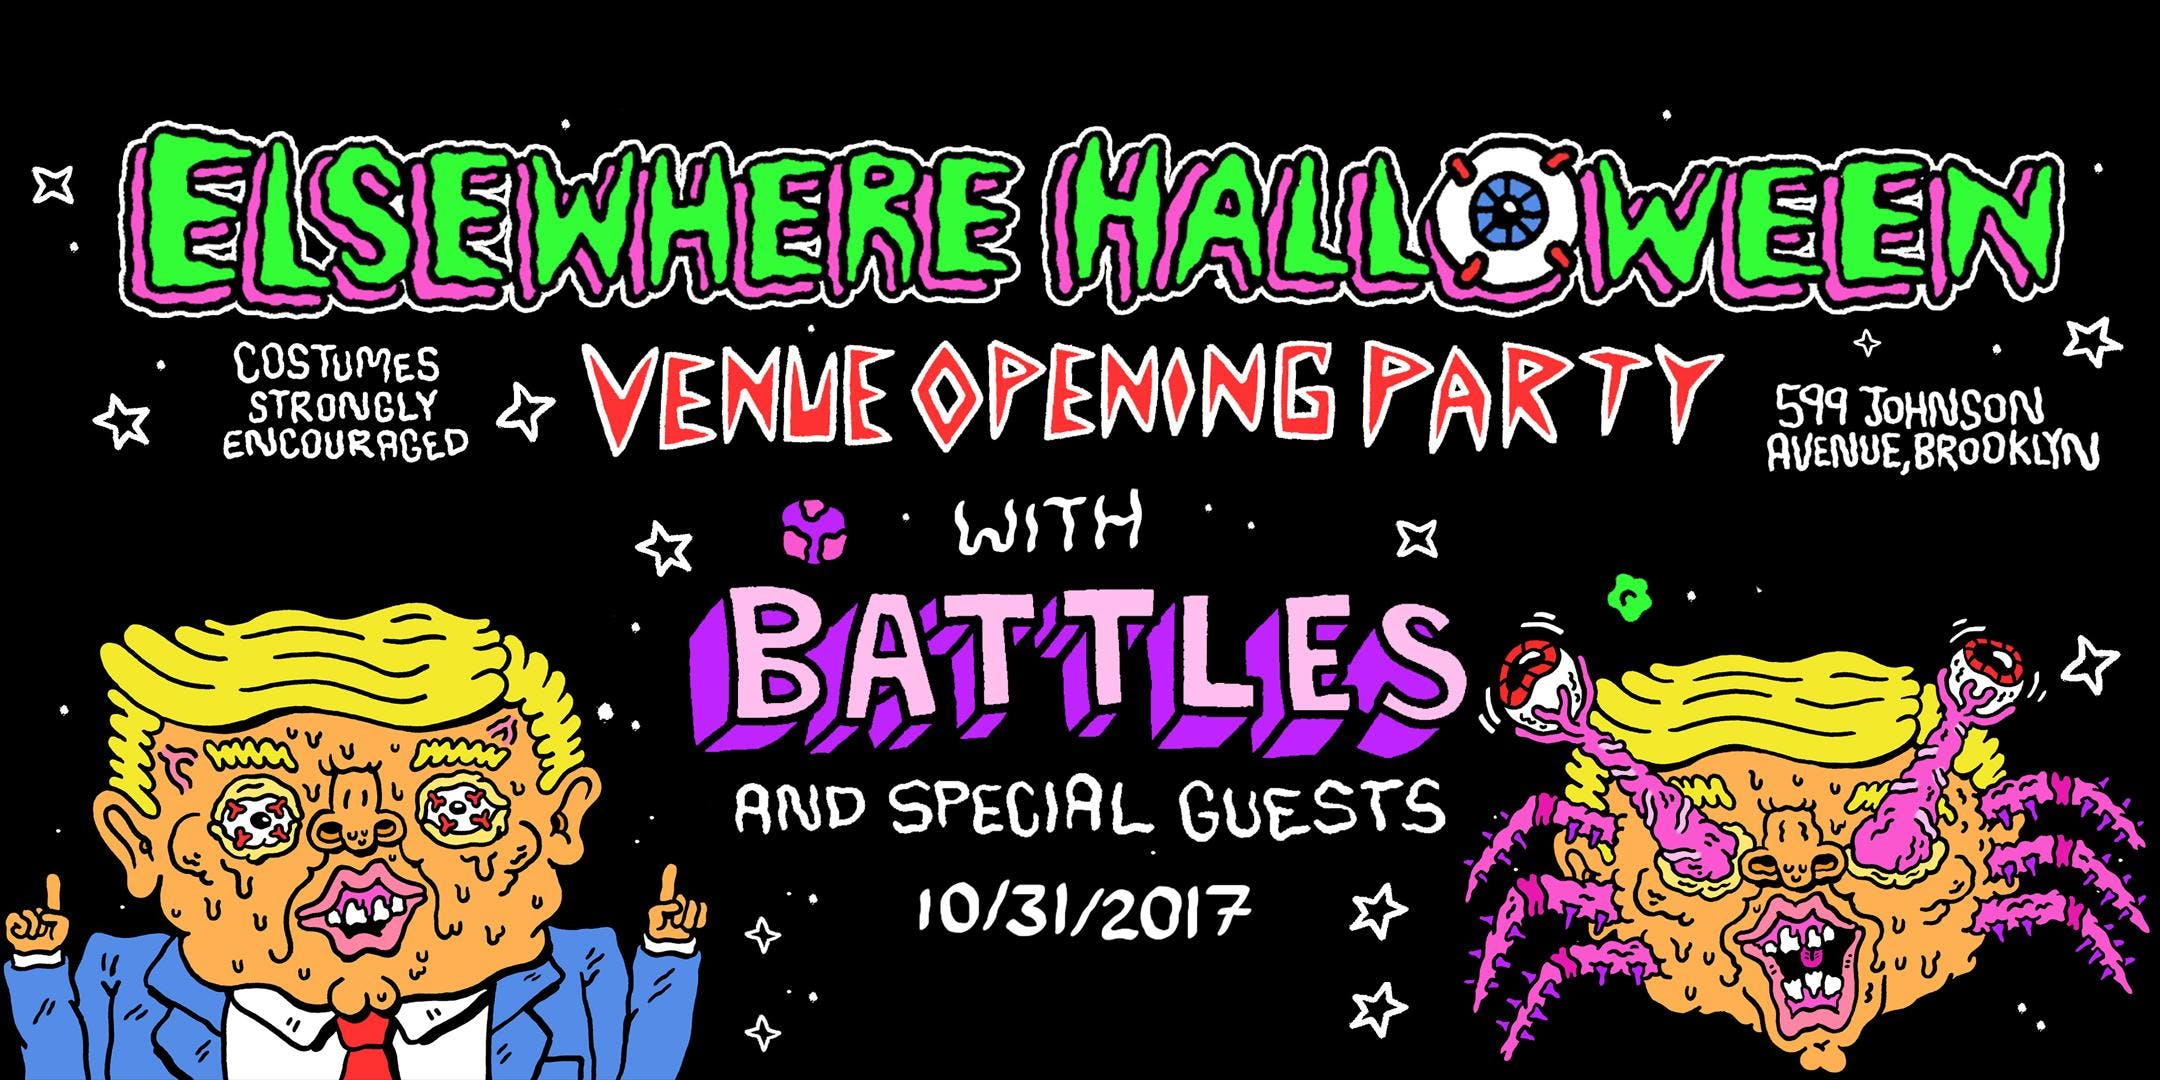 Elsewhere Halloween Grand Opening with Battles!